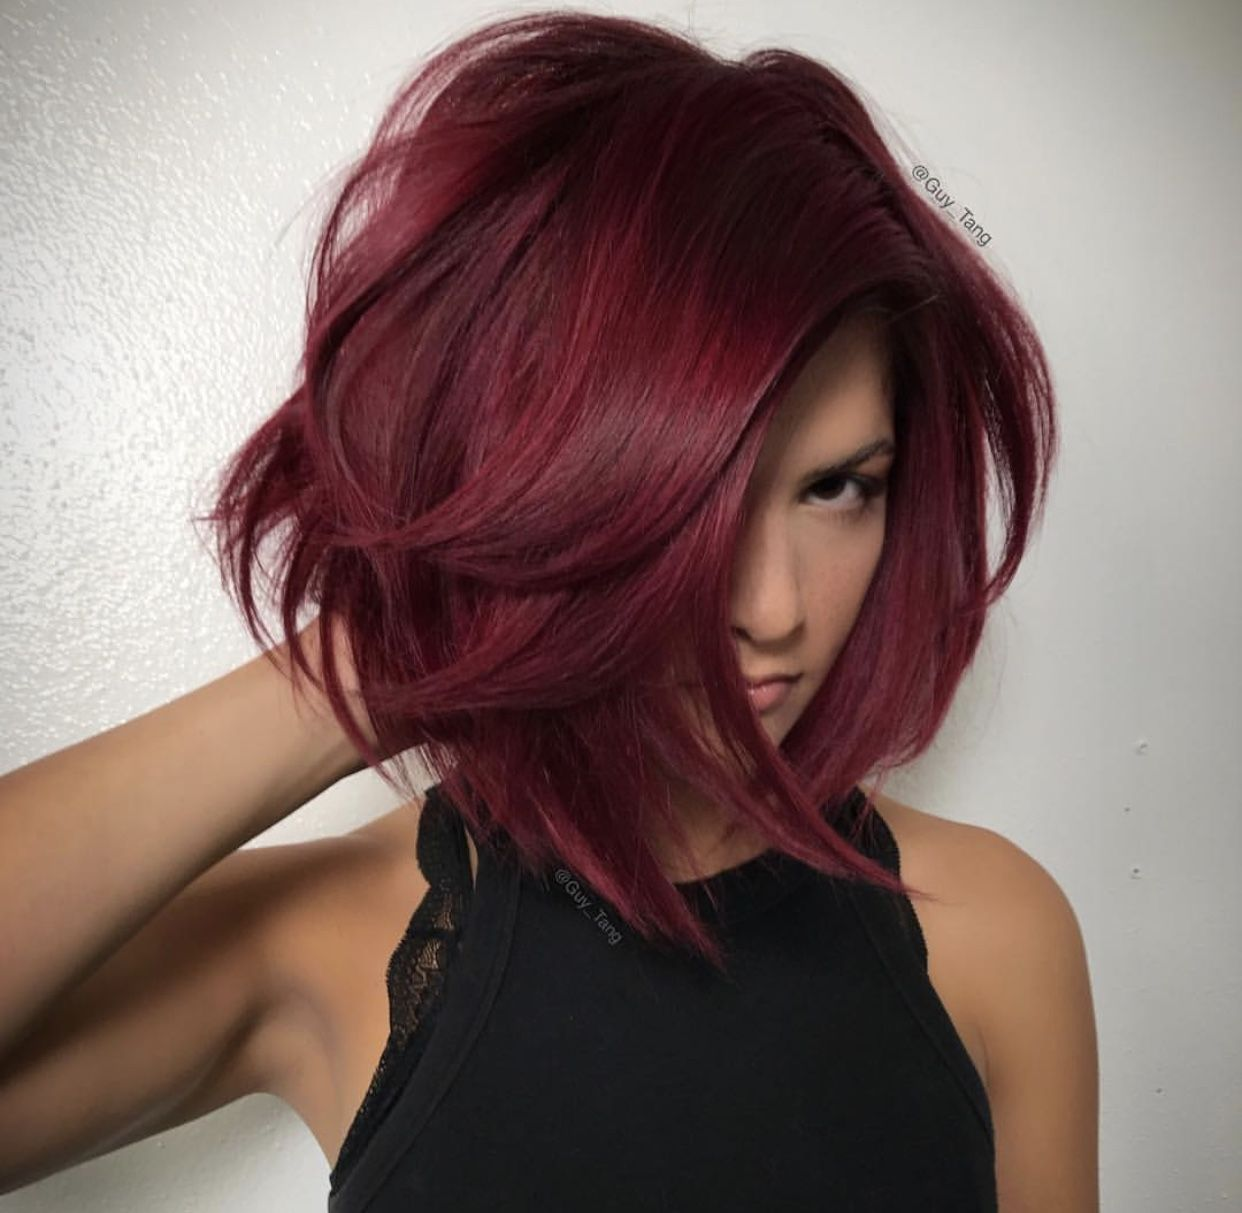 Red Raspberry hair color for Fall | Hair Makeup Nails ...